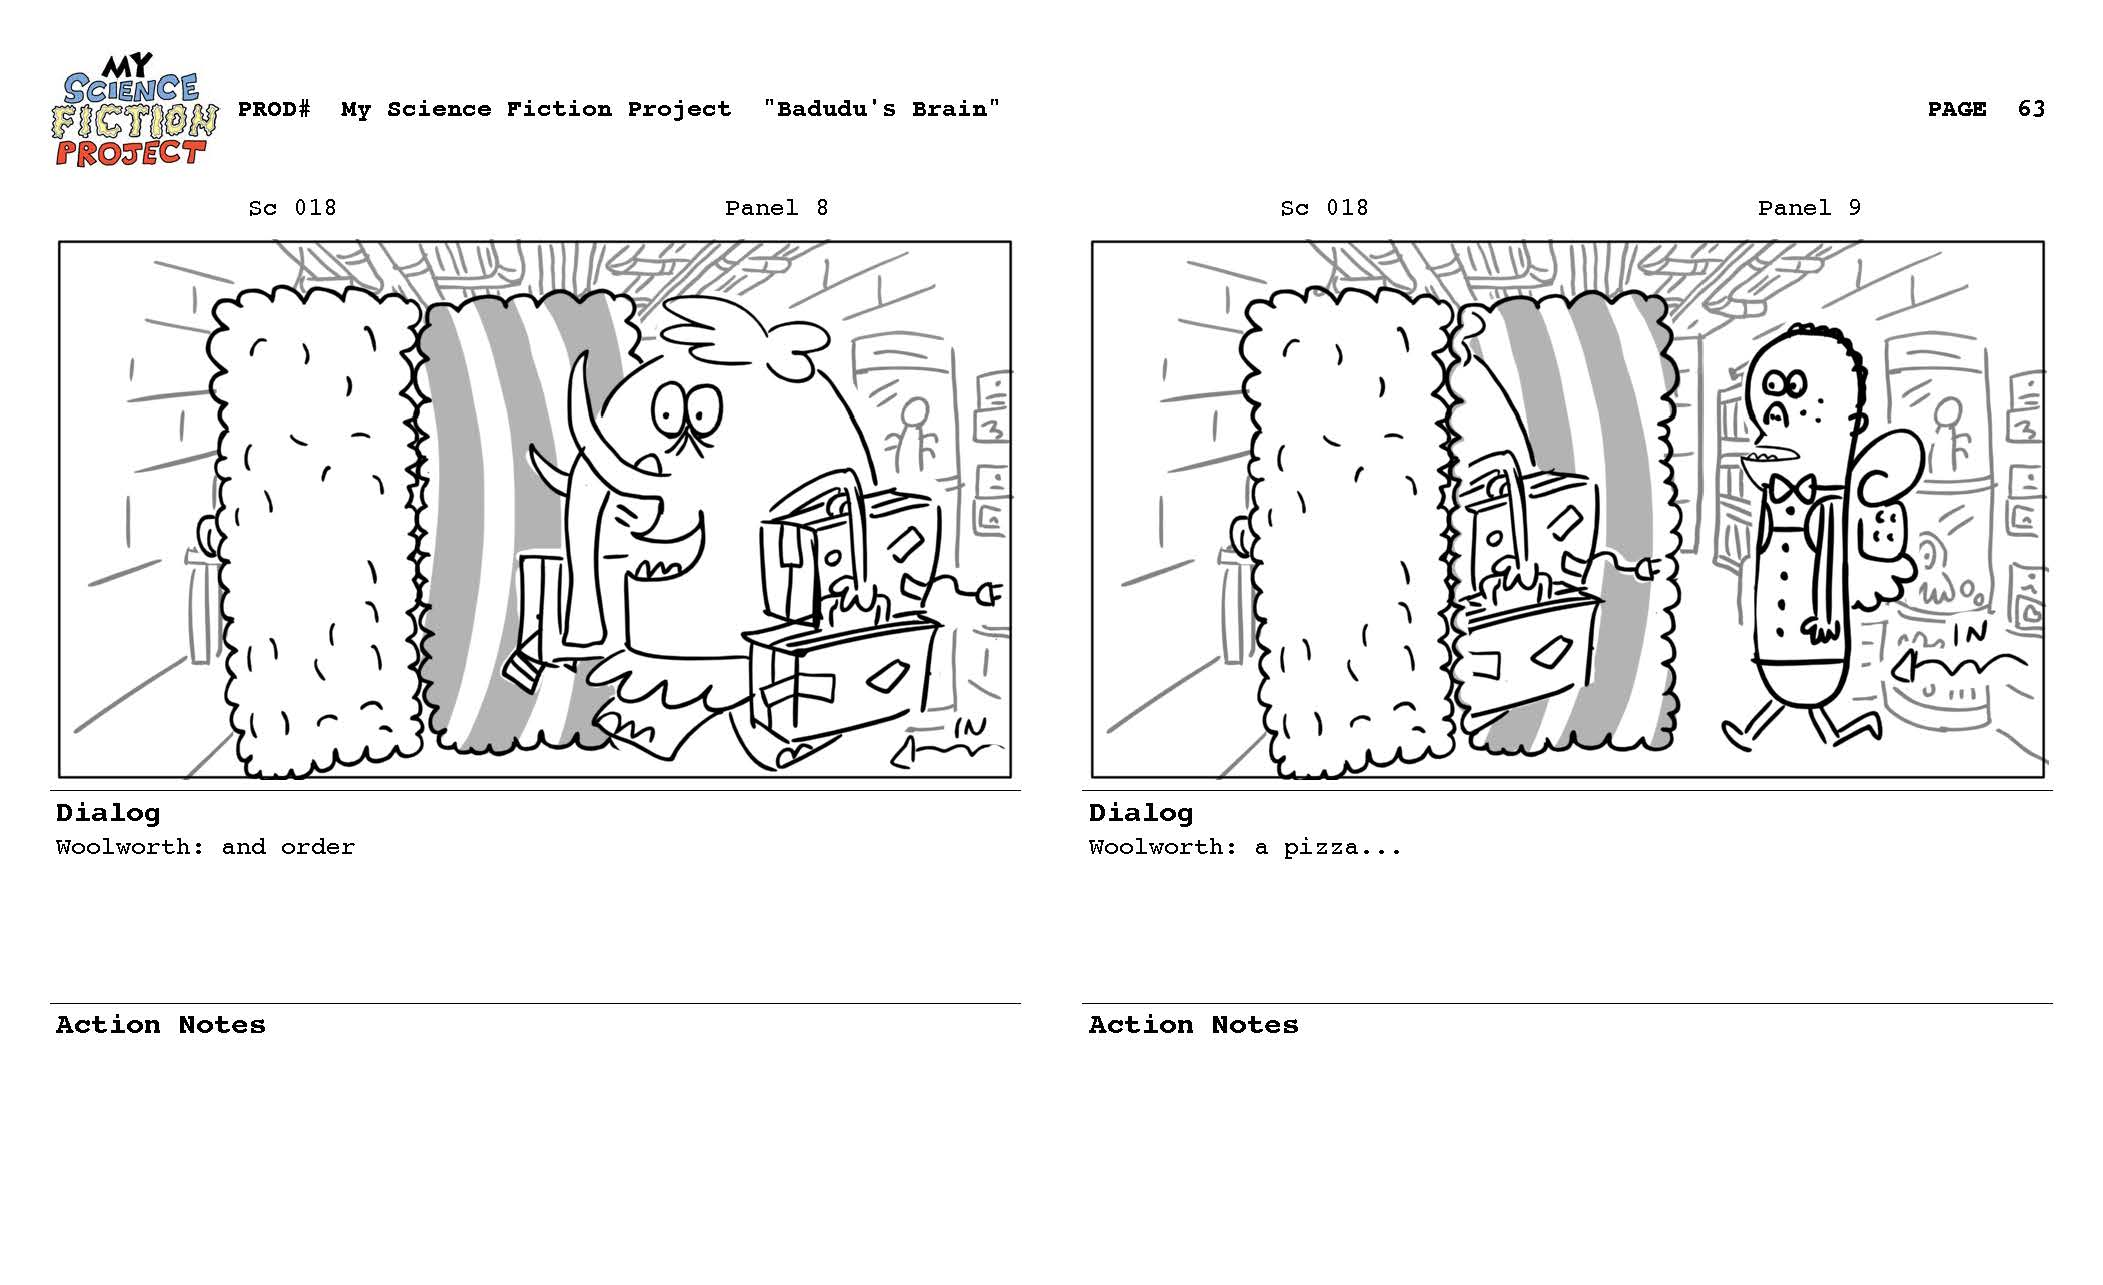 My_Science_Fiction_Project_SB_083112_reduced_Page_063.jpg